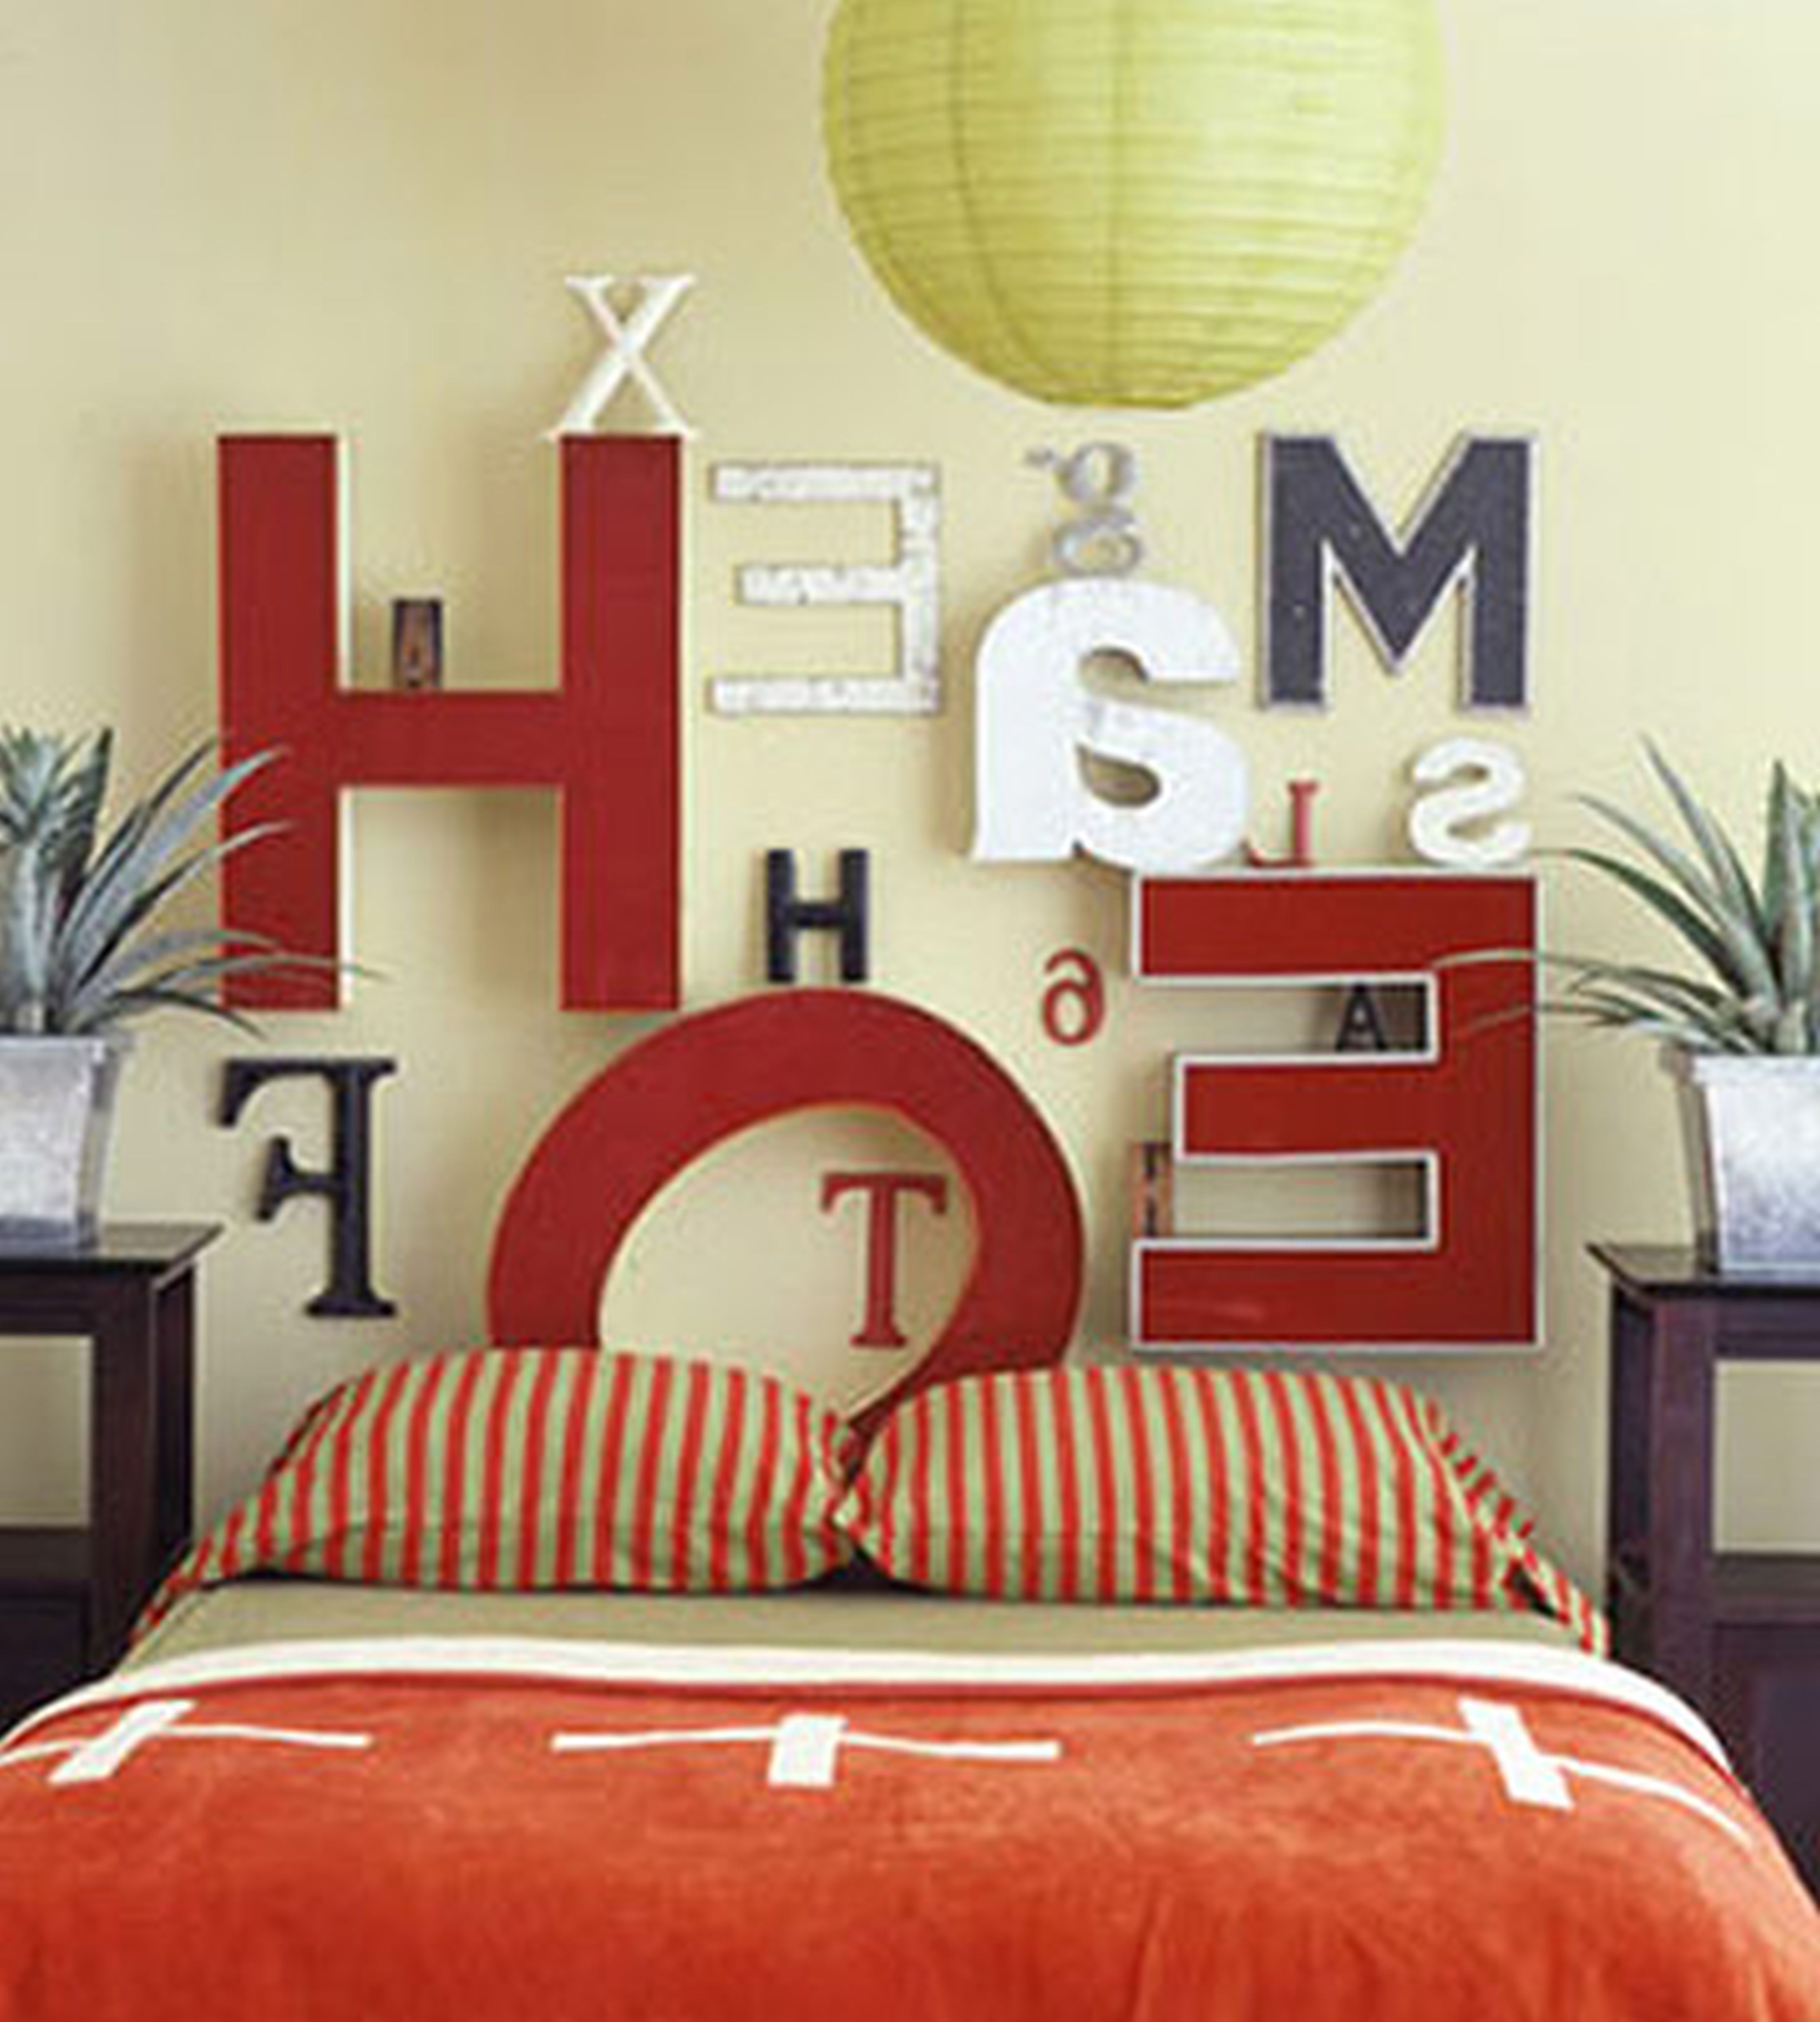 bedroom home decorating ideas creative and cheap bedroom bedroom home decorating ideas creative and cheap bedroom headboard